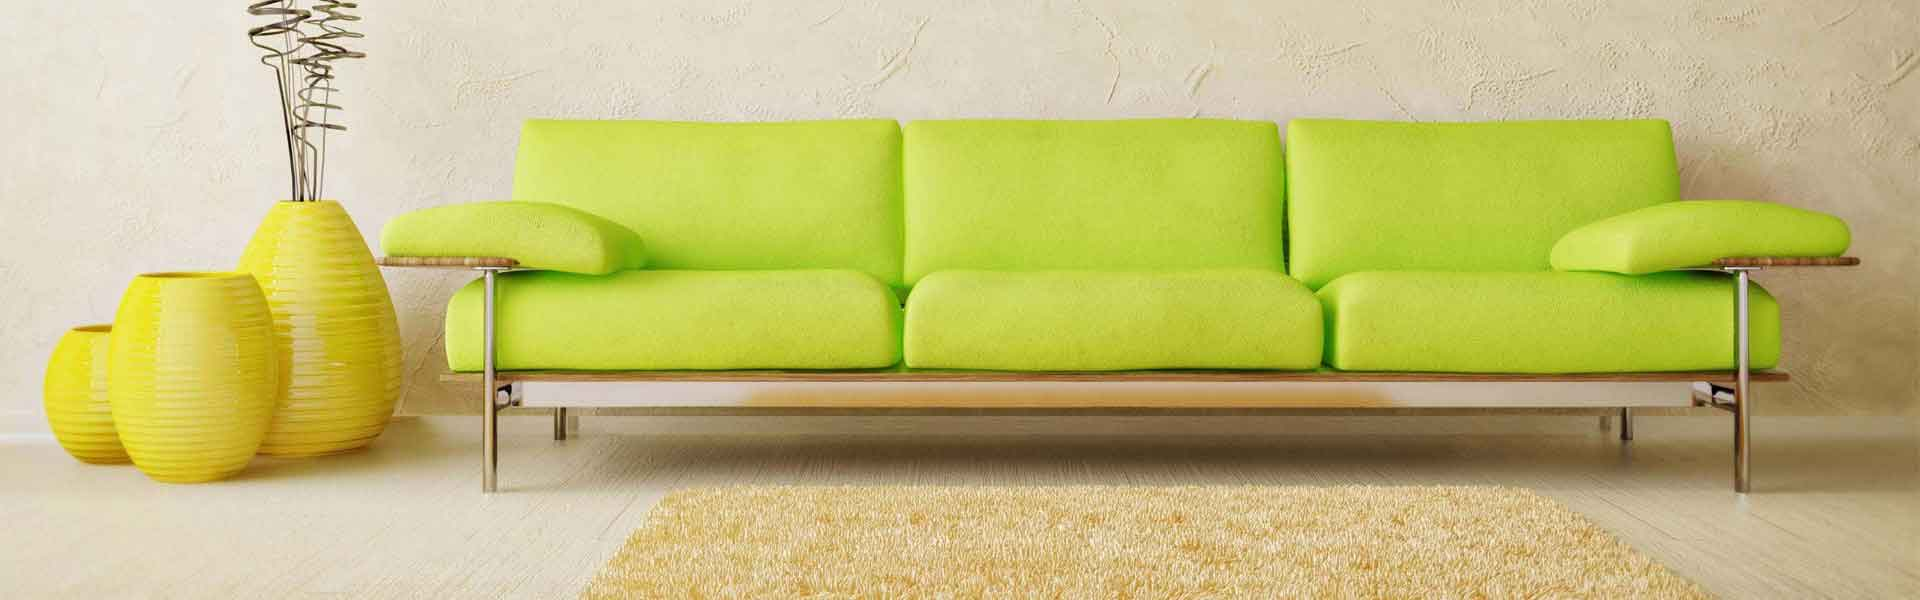 Add A Sense Of Comfort To Your Living Space!